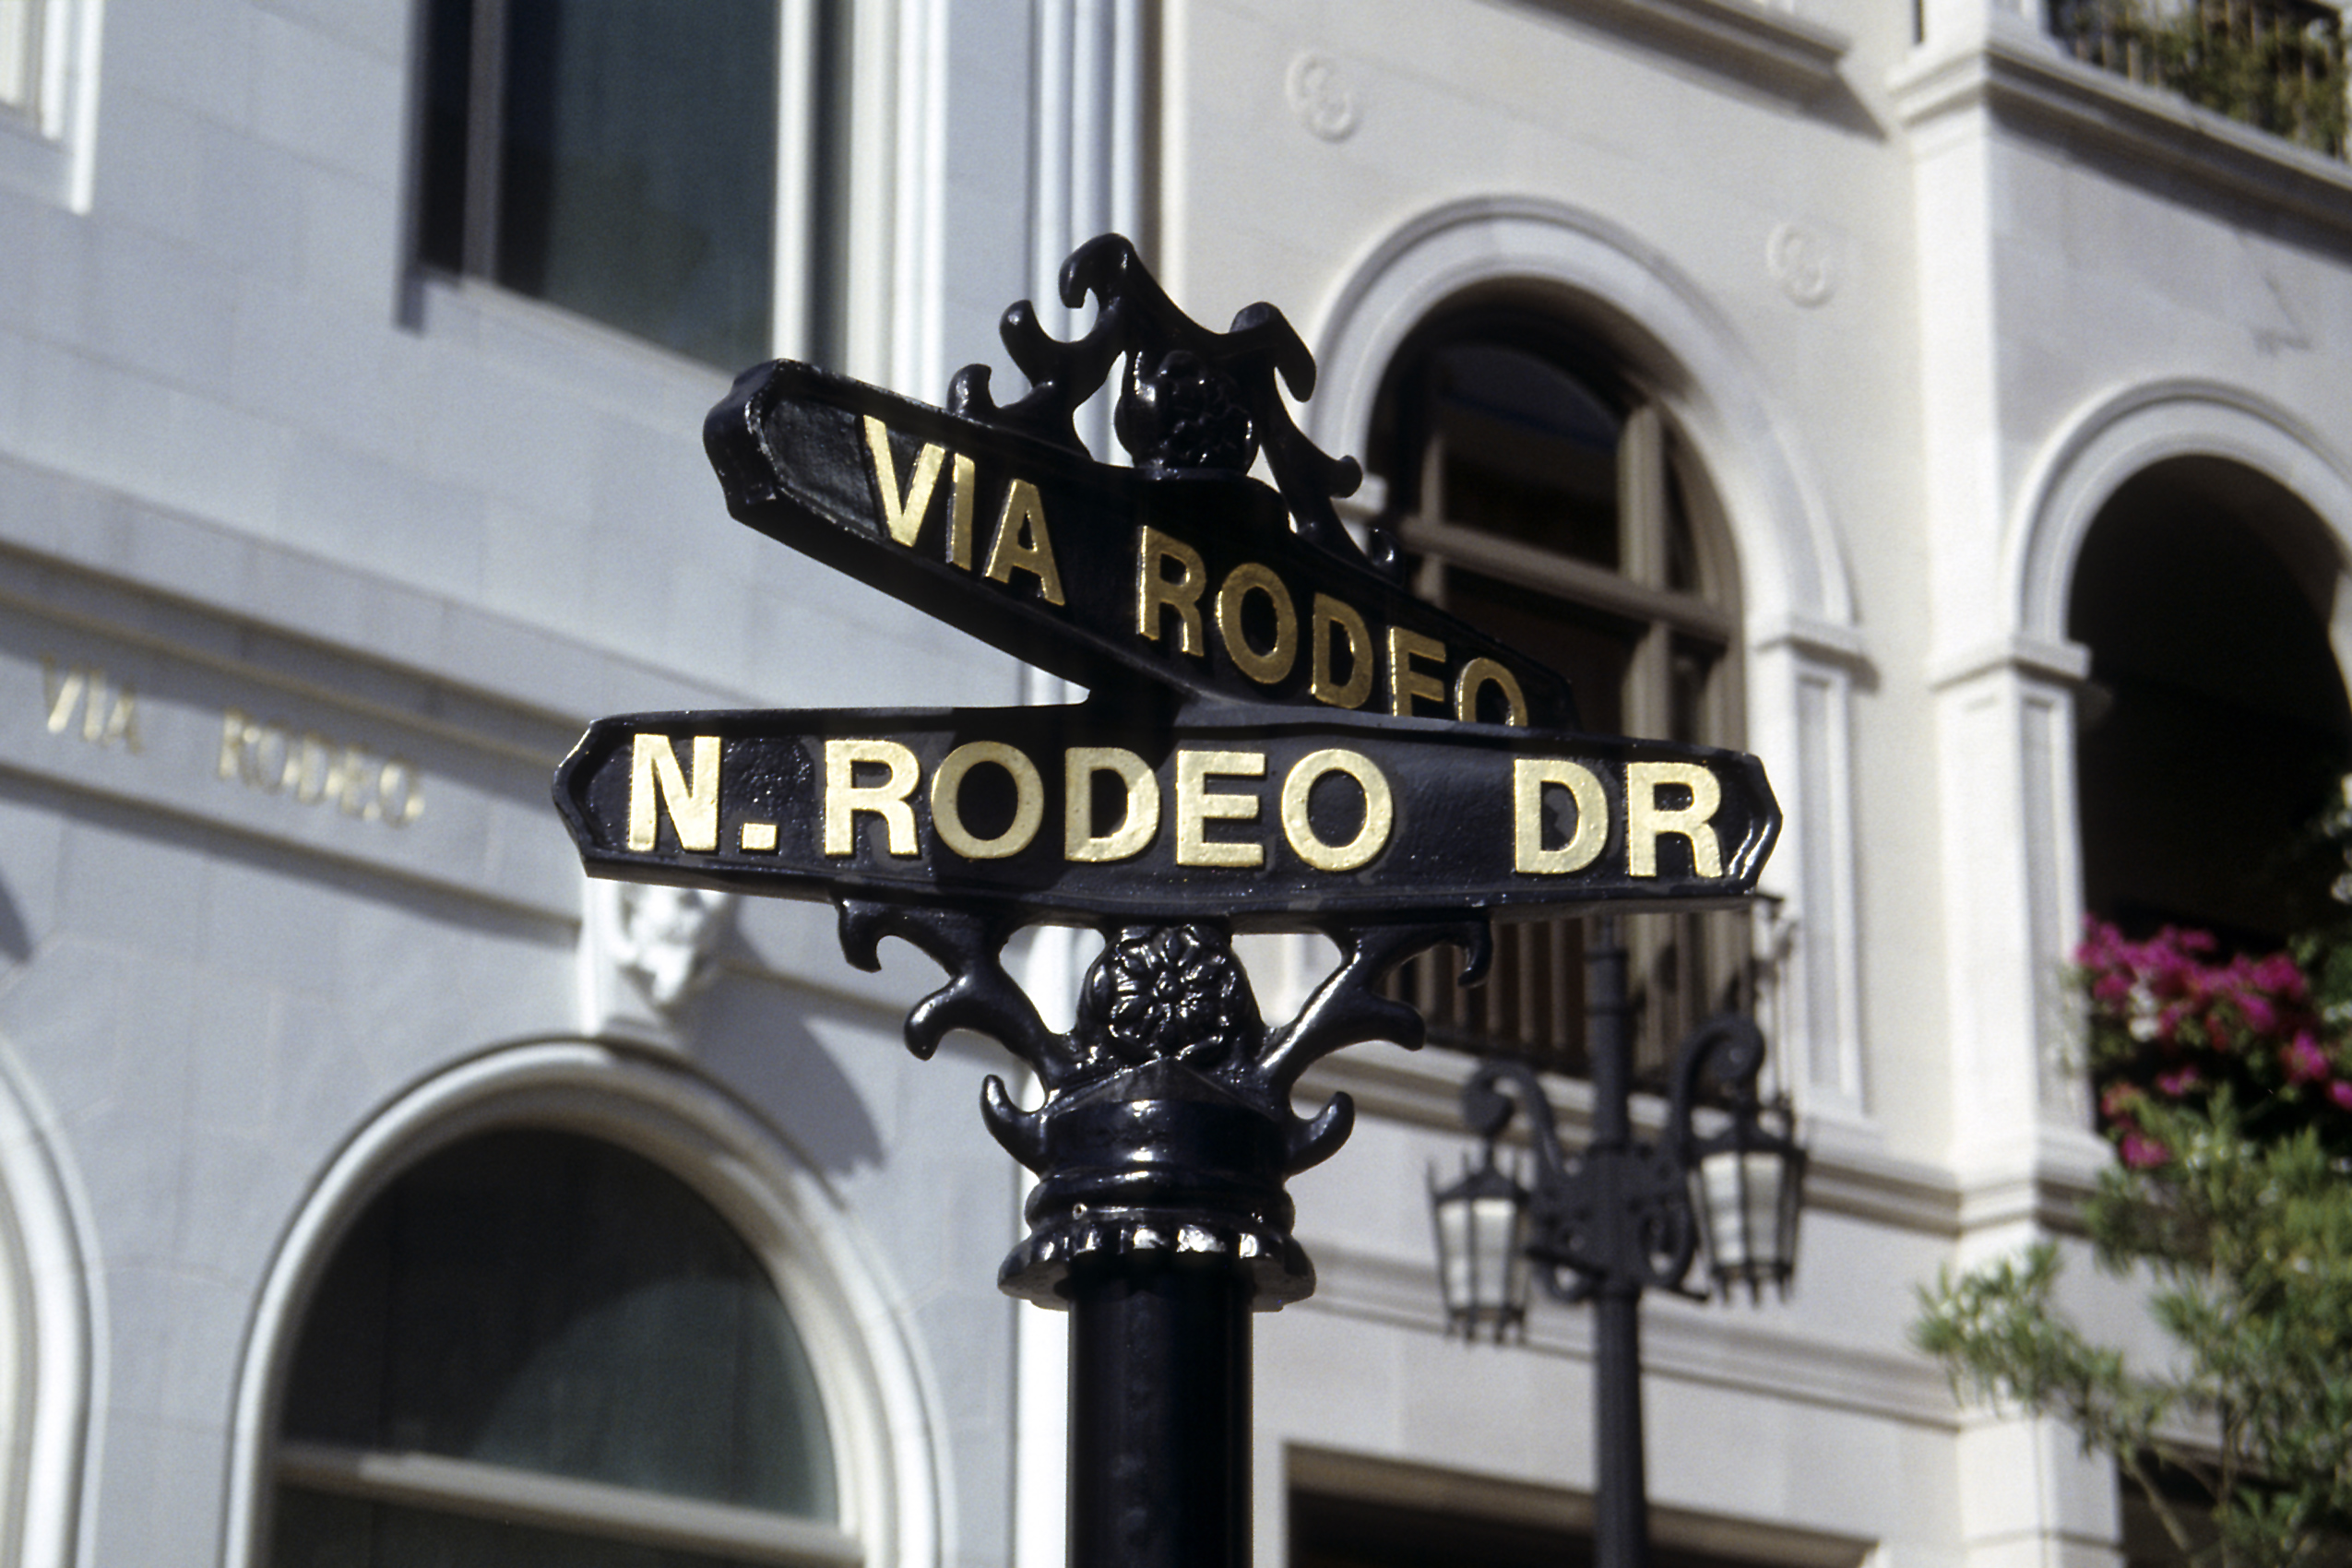 Rodeo Drive Sign - Torsten Bolten 1993